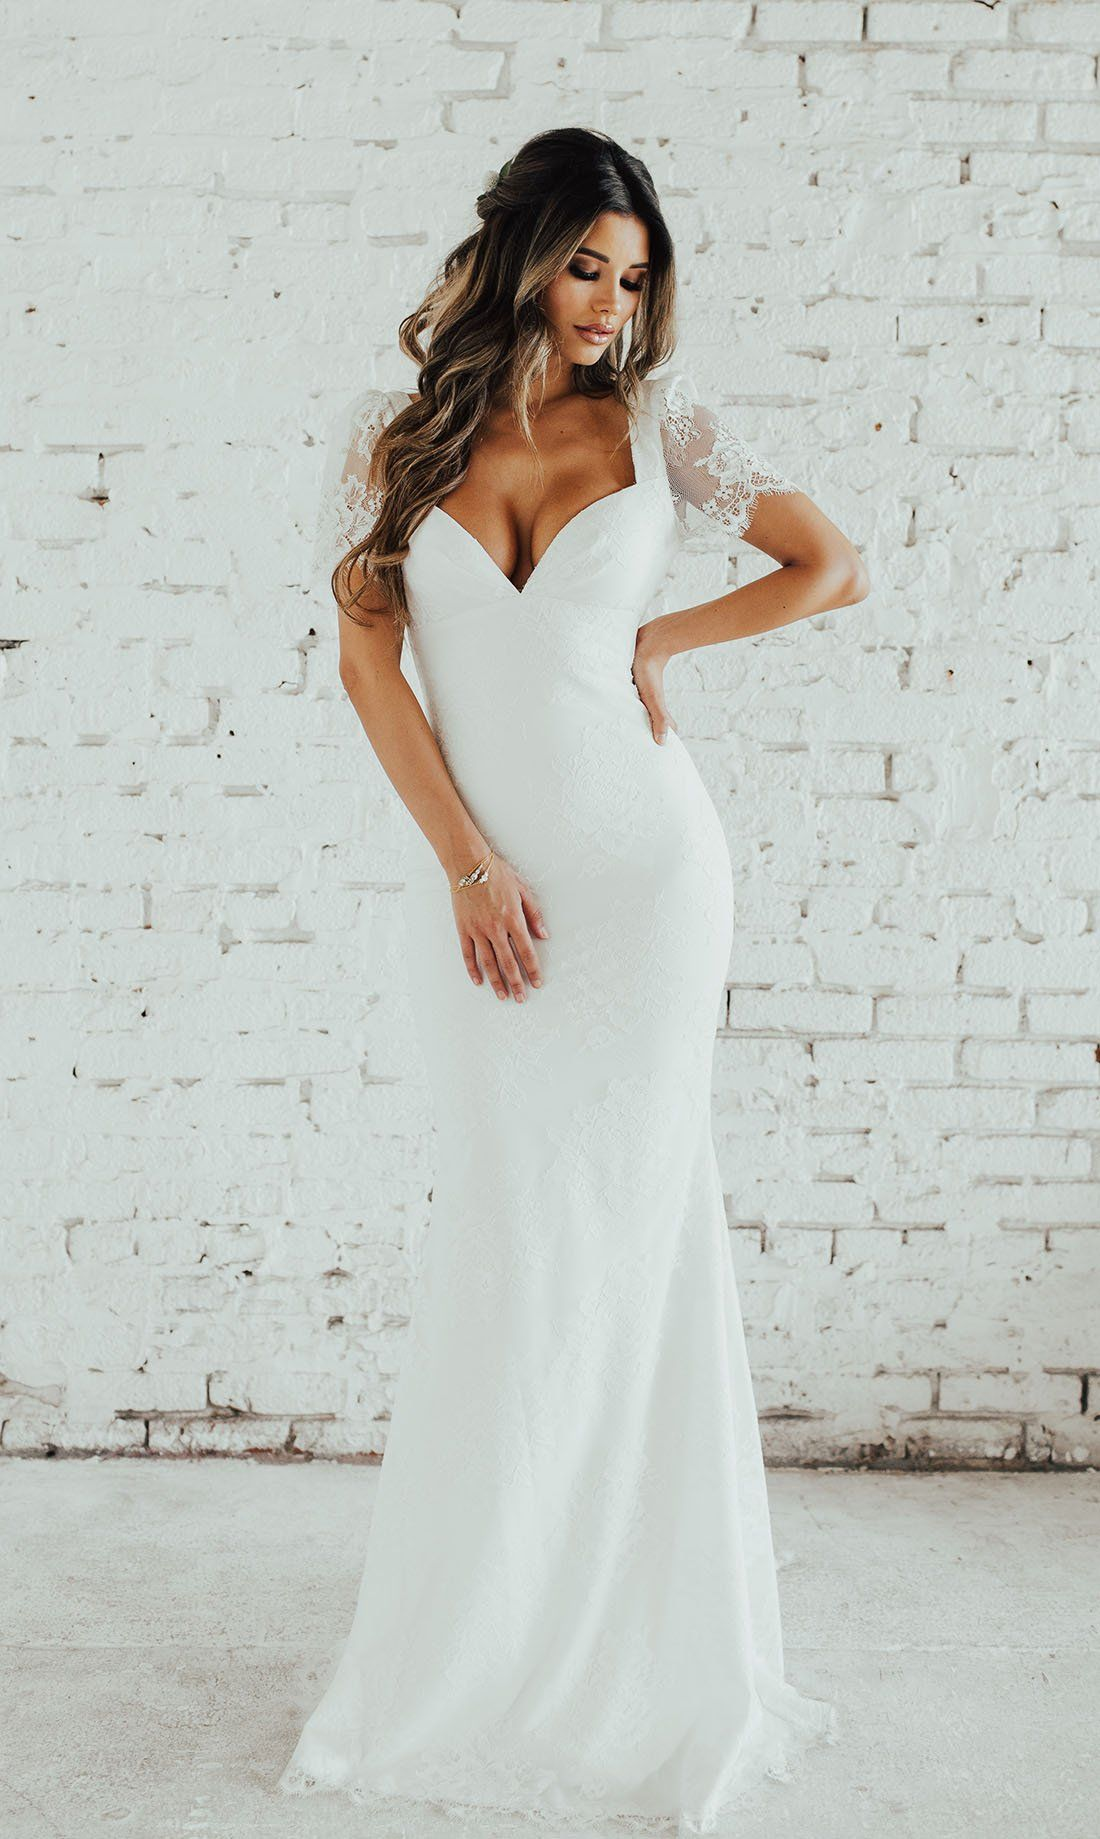 Malaga by katie may bridal modern bohemian wedding dresses sexy